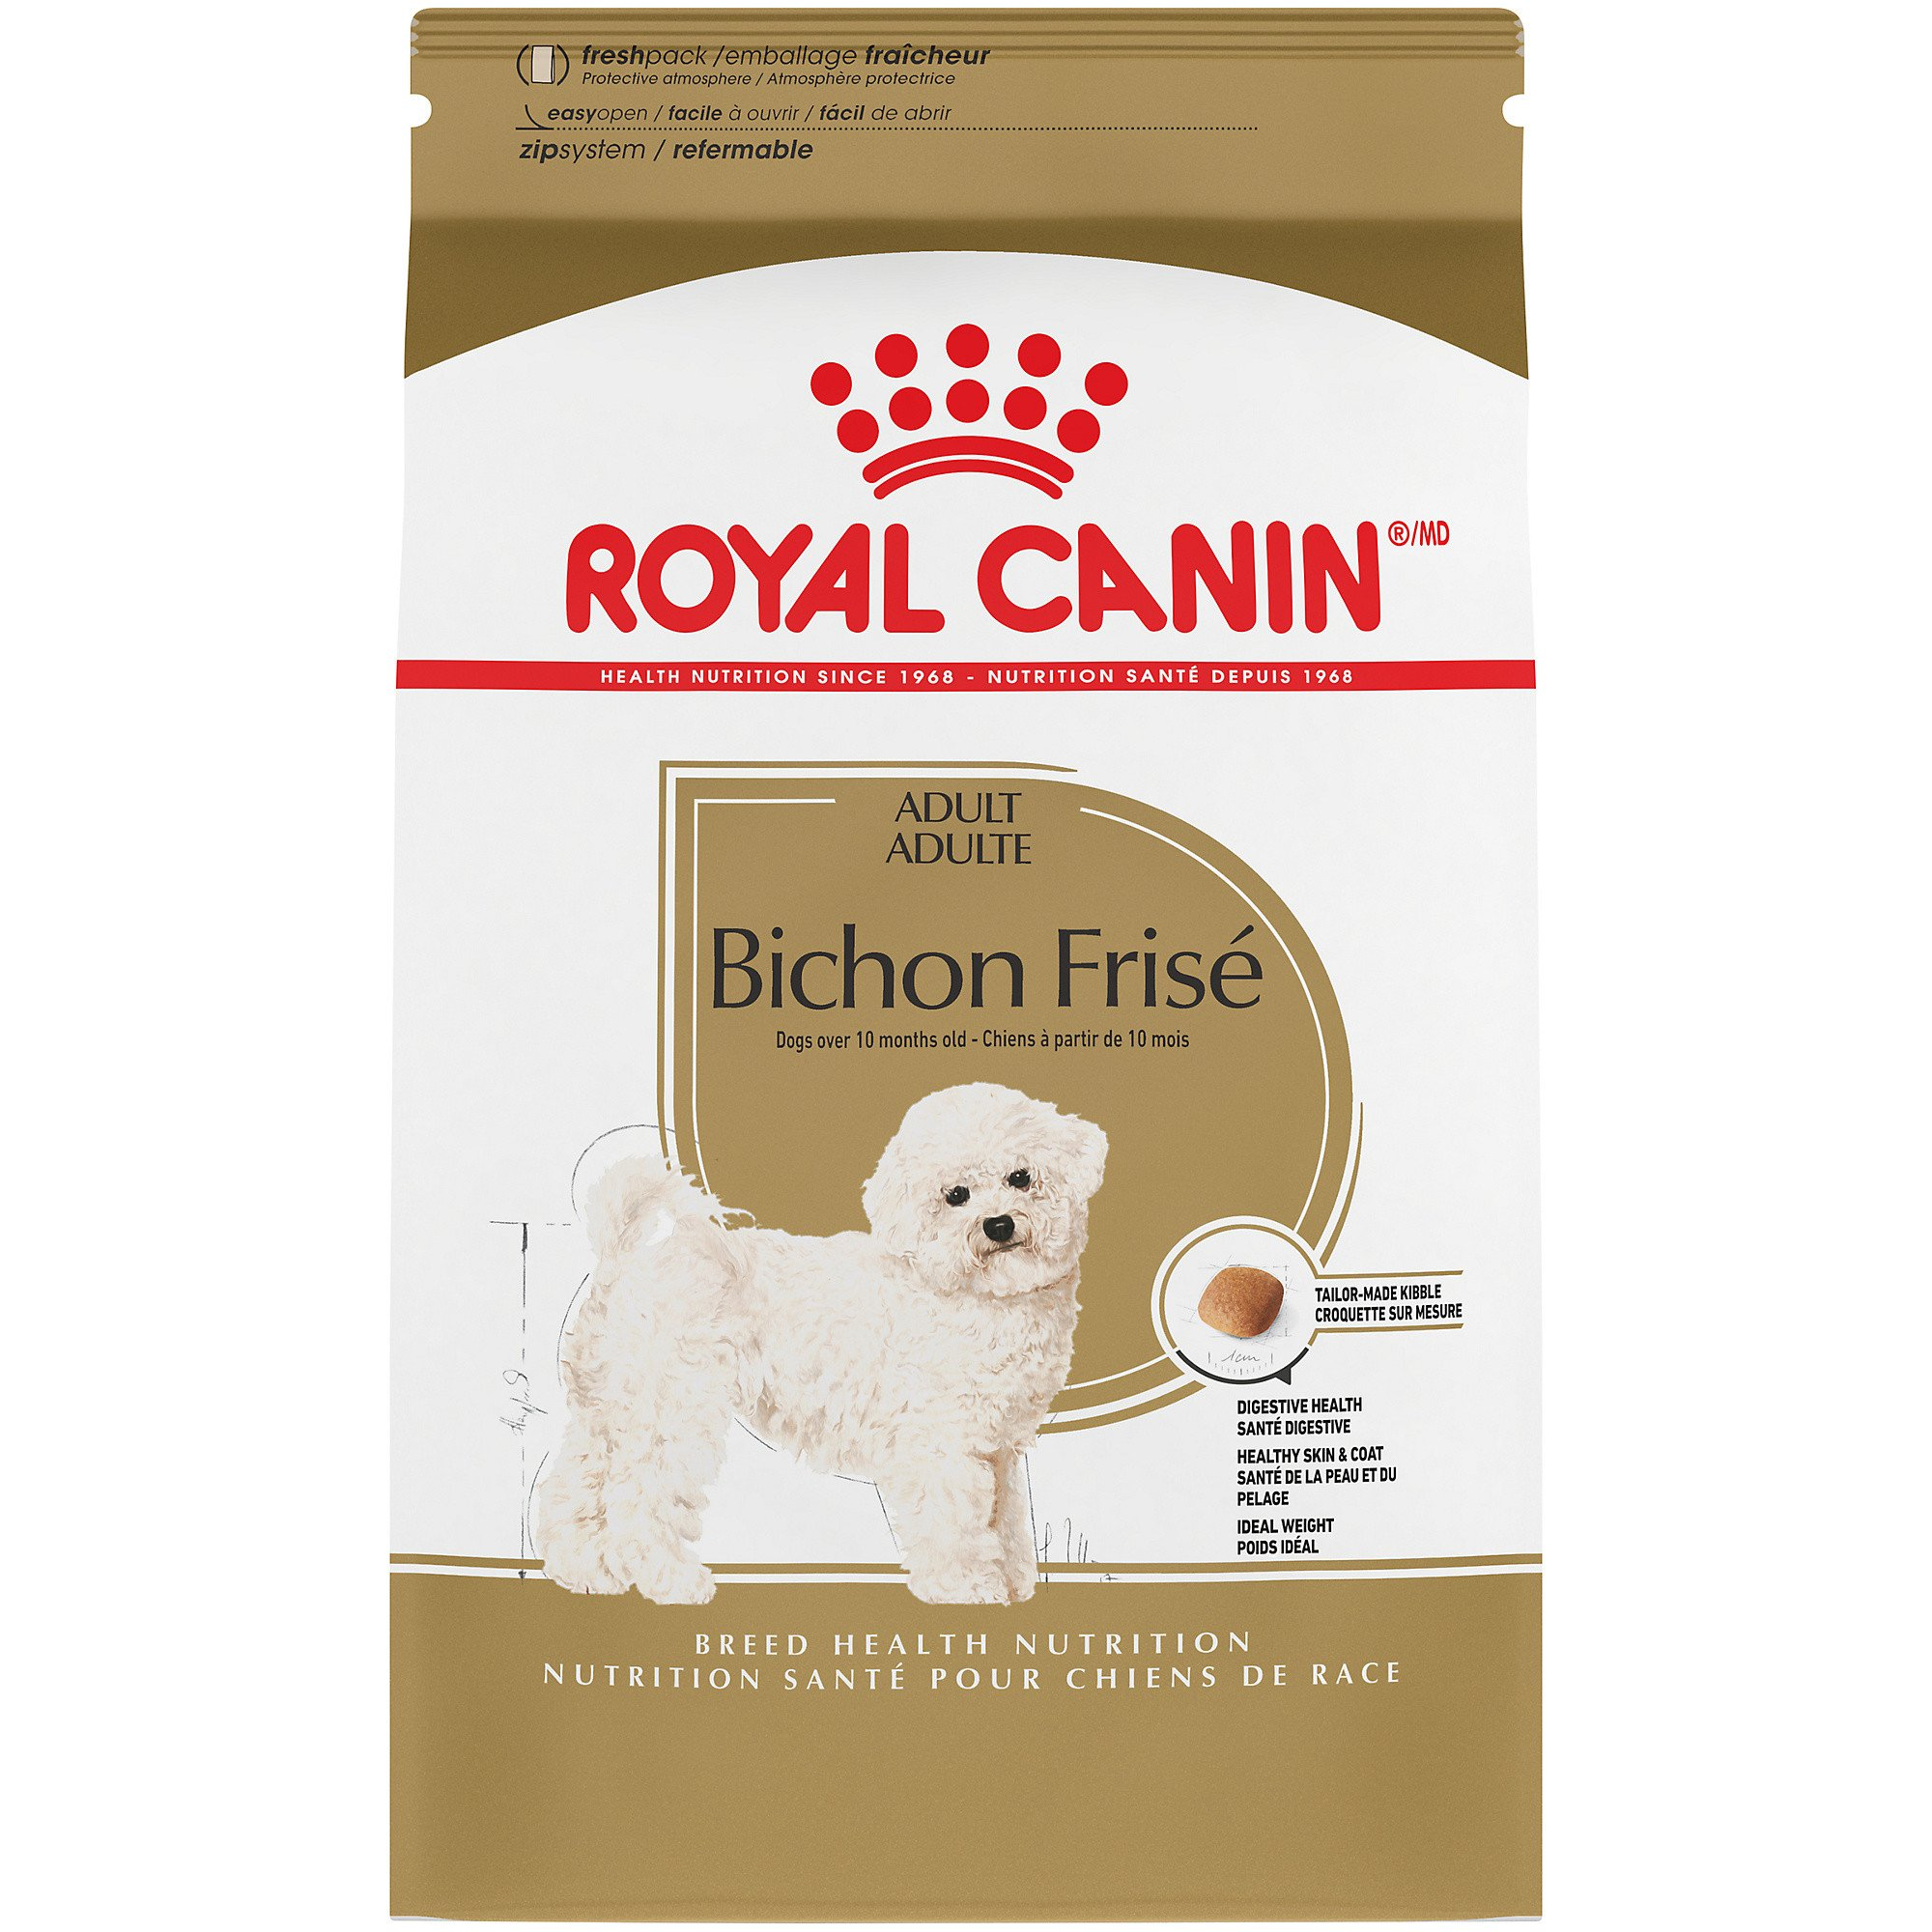 Royal Canin Breed Health Nutrition Bichon Frise Adult Dry Dog Food | Petco